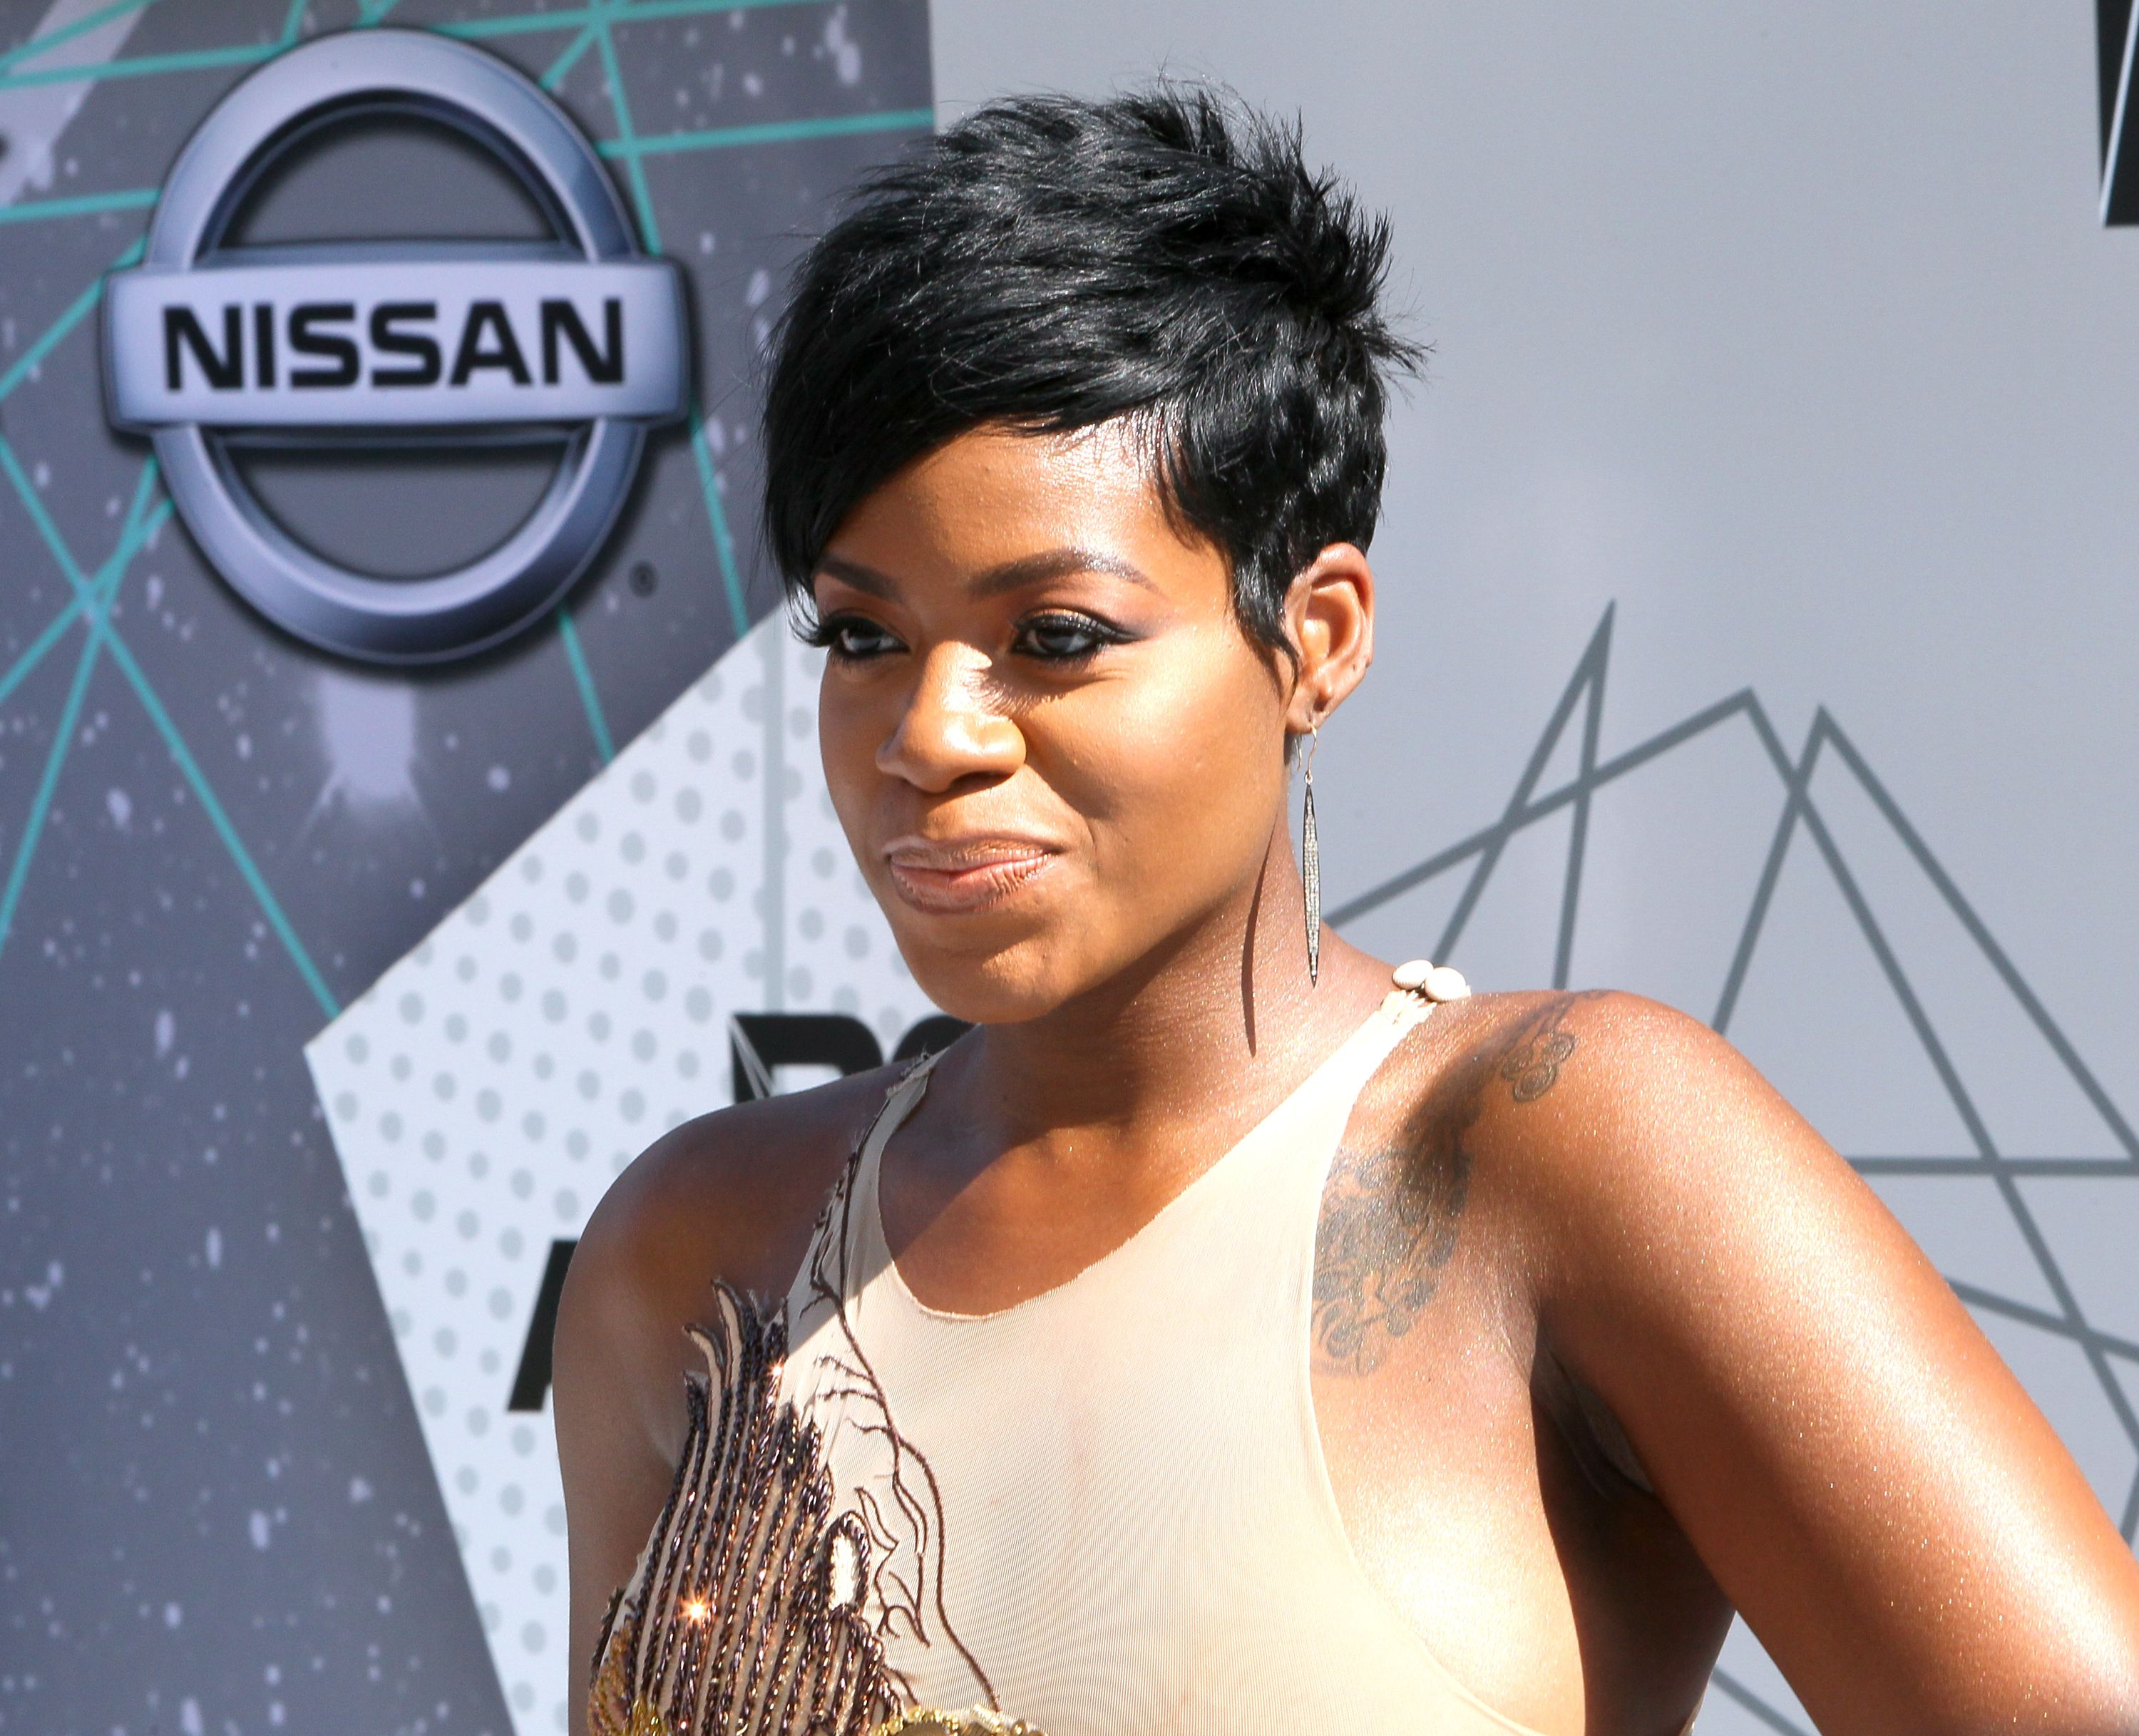 Singer Fantasia Barrino at the 2016 BET Awards at Microsoft Theater on June 26, 2016 in Los Angeles, California | Photo: Getty Images